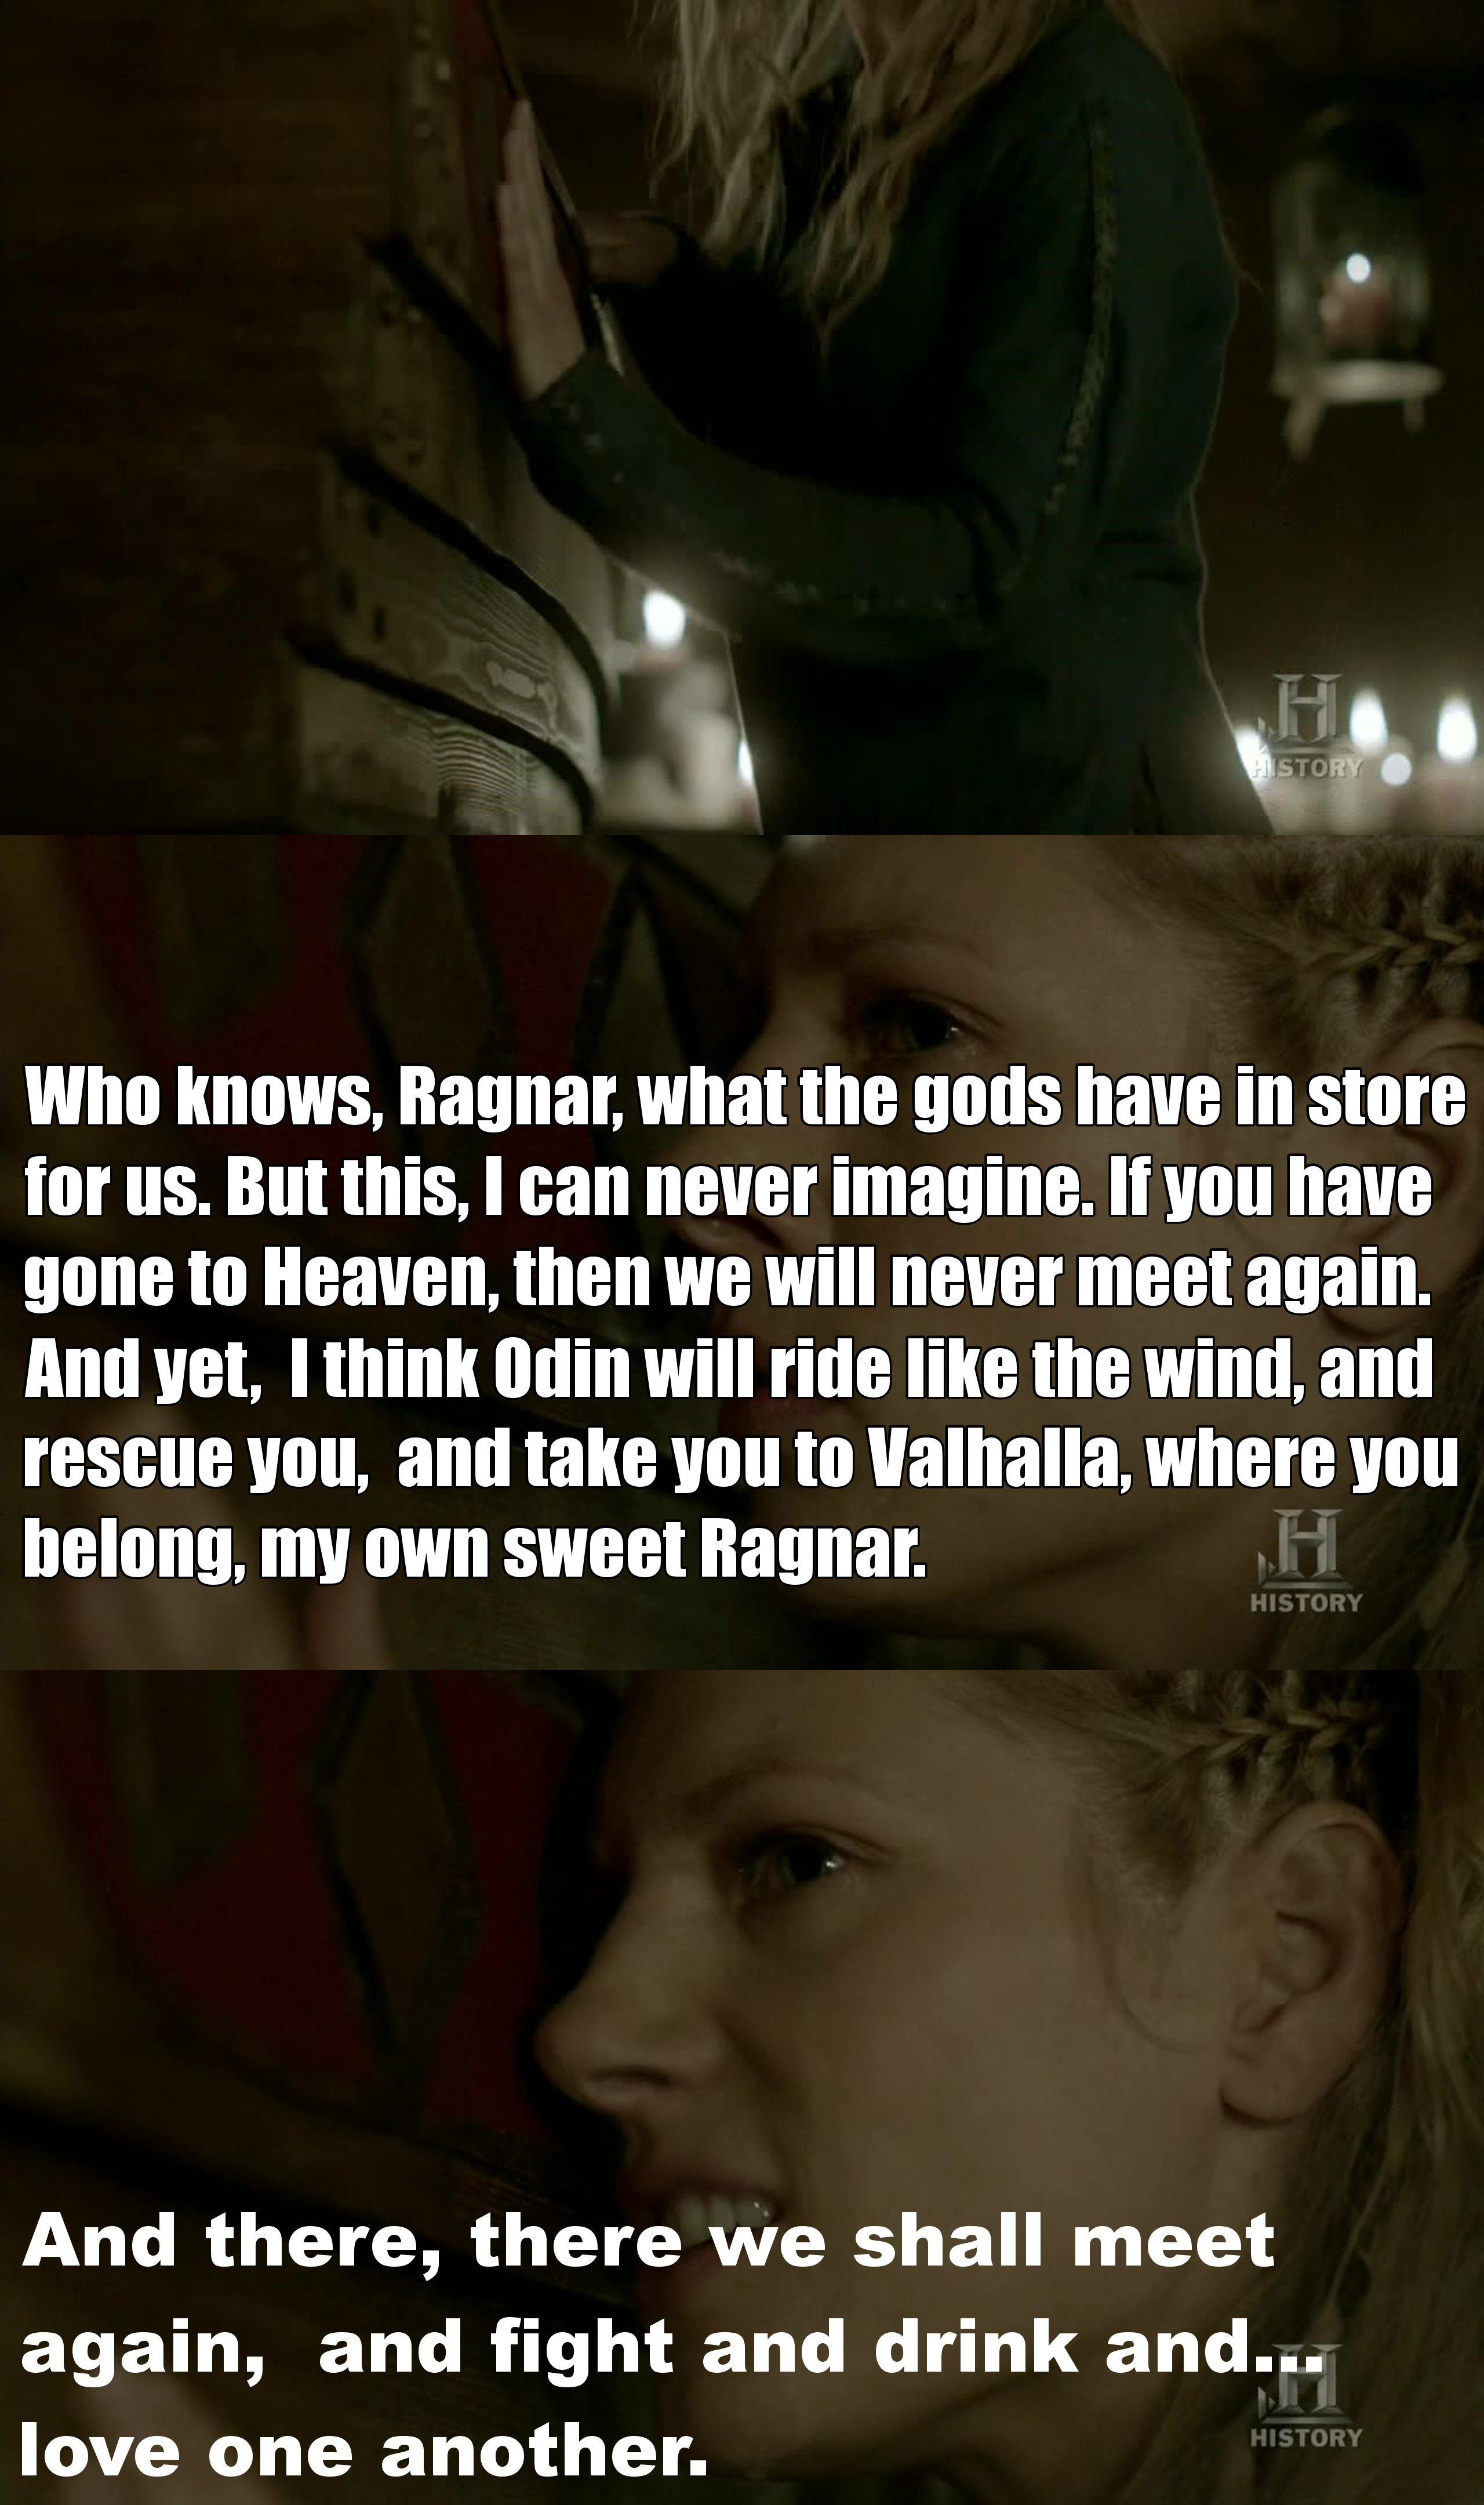 Lagertha ! you gave me the chills in this scene !